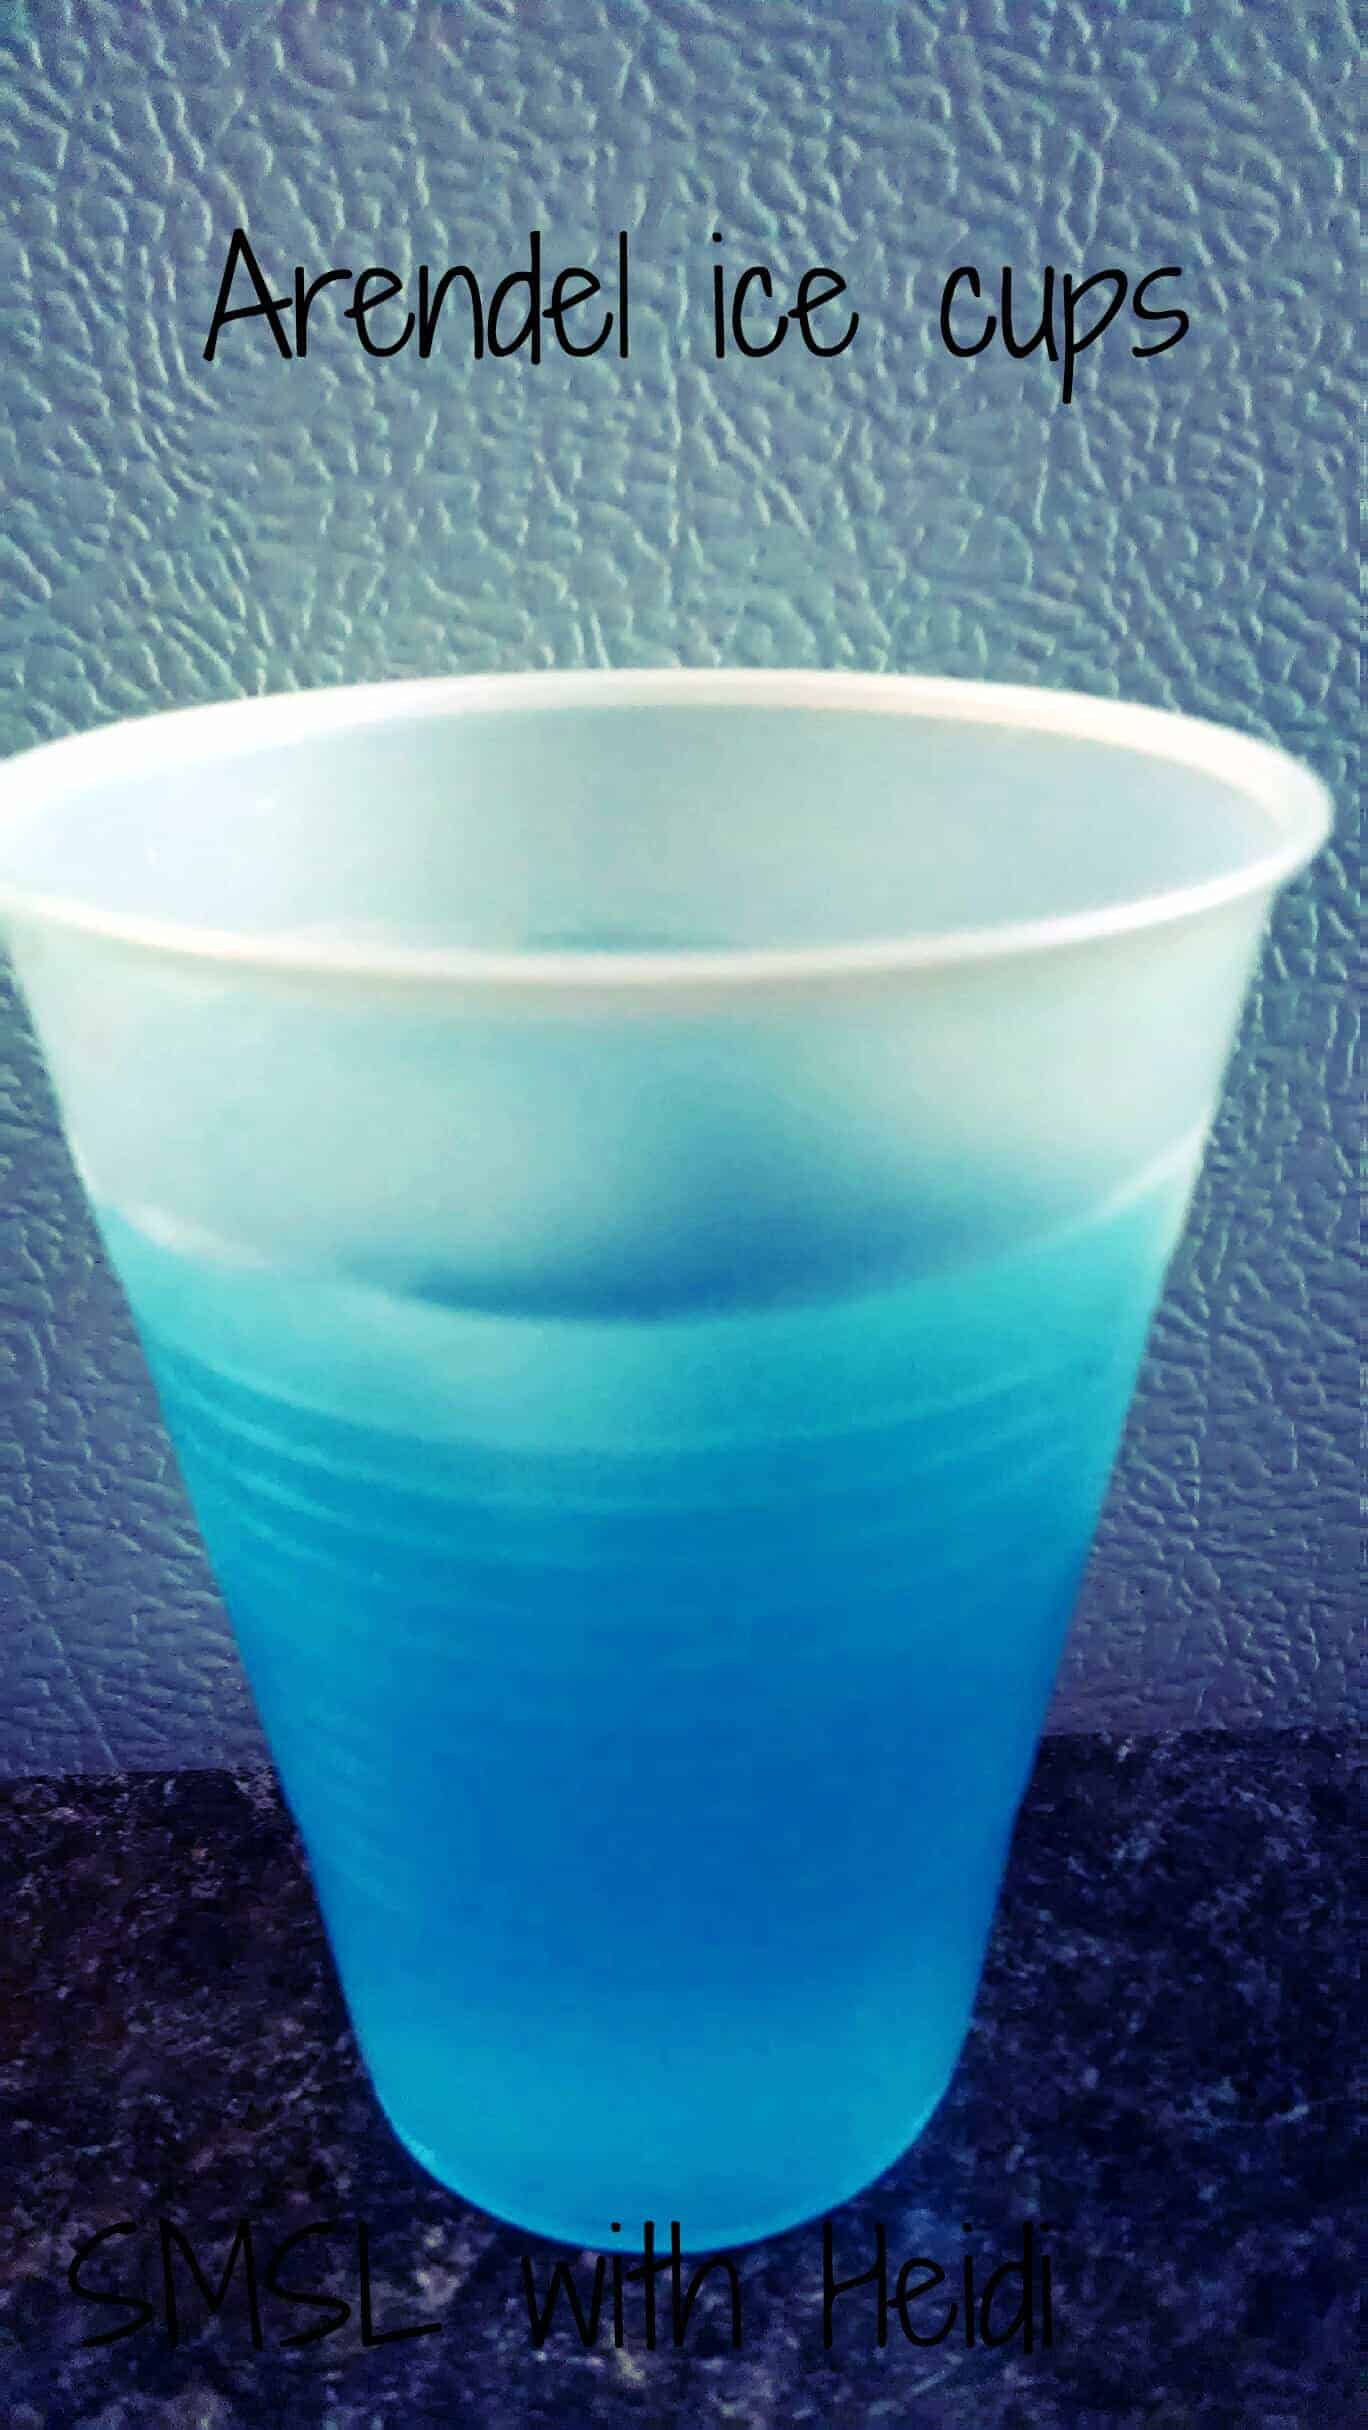 Arendel-ice-cups